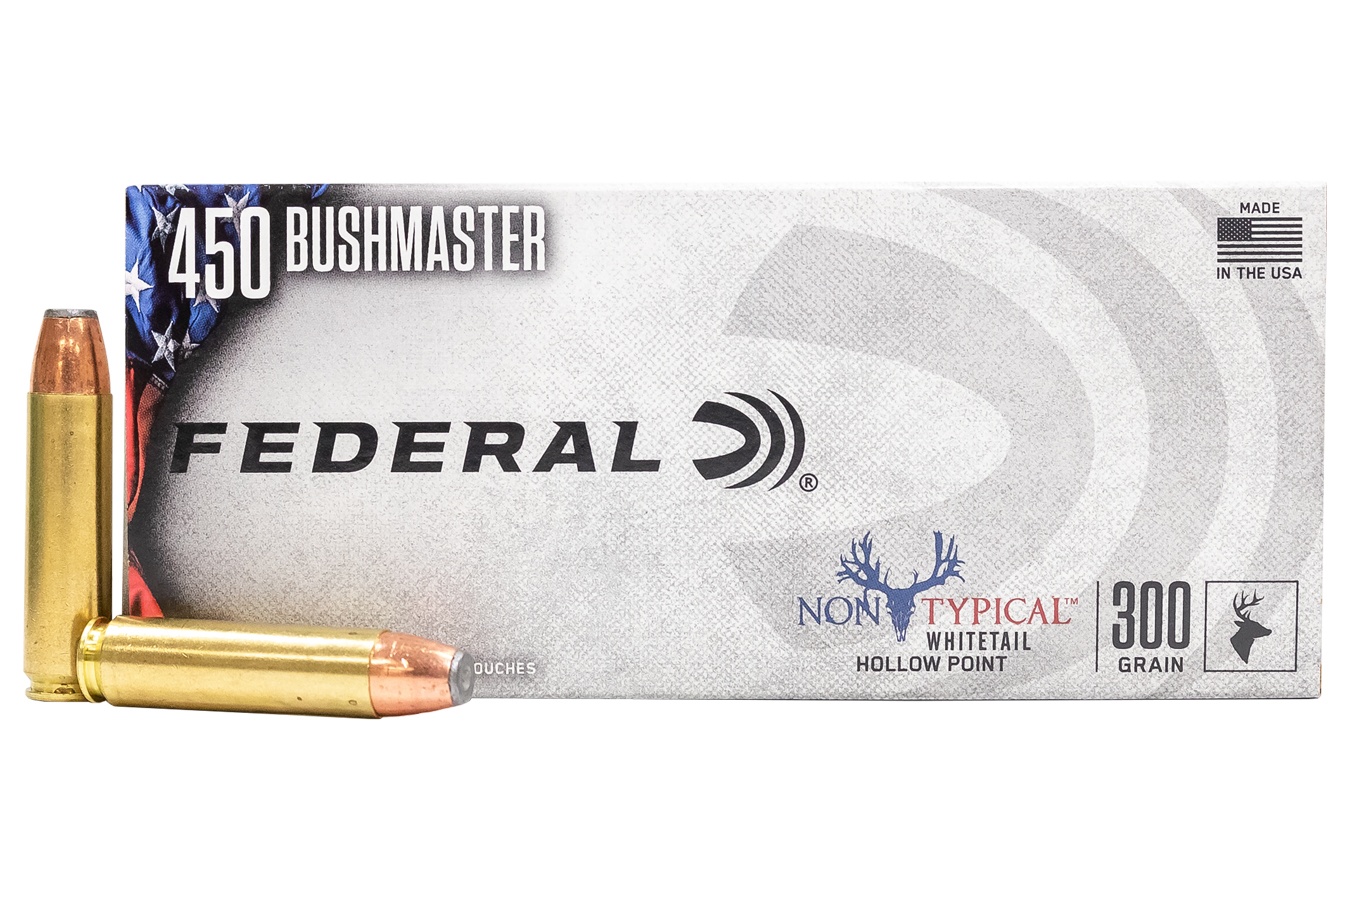 450 BUSHMASTER 300 GR NON TYPICAL SOFT POINT